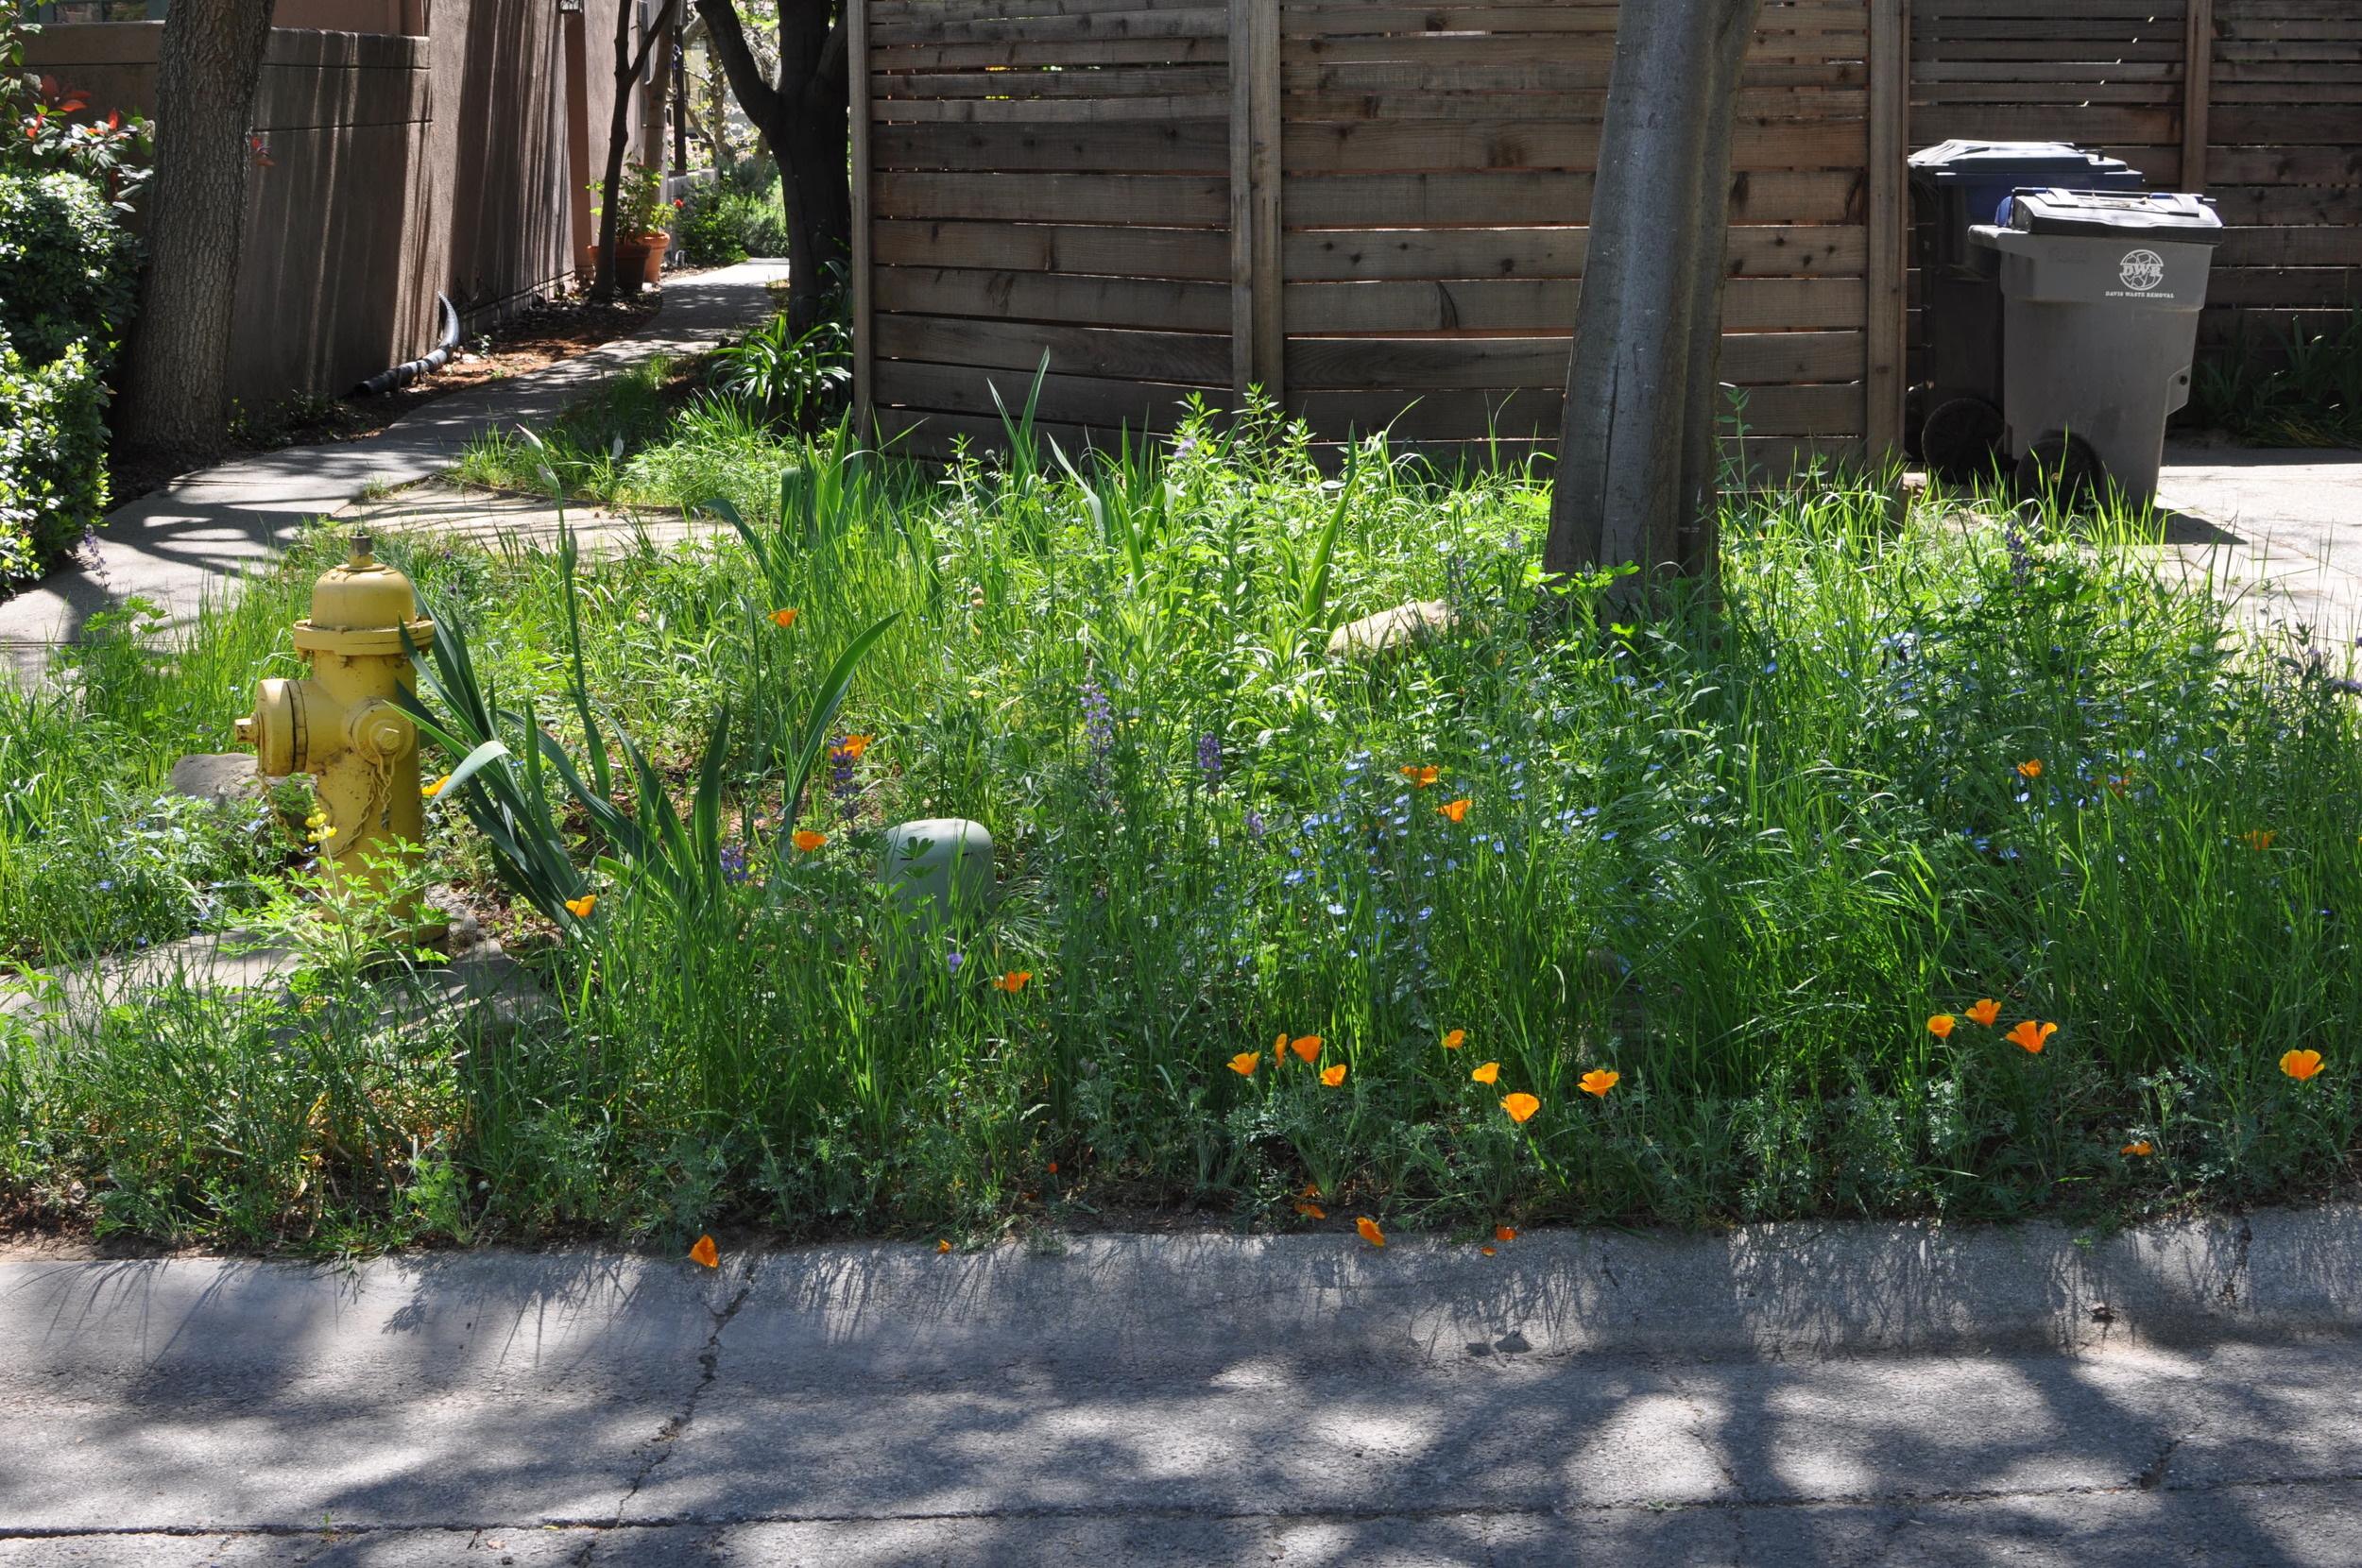 A lawn replaced with native wildflowers by Restoration Landscaping Co., Davis, CA. This ecosystem requires only a tiny fraction of the water of a turf lawn; at the same time, it provides habitat for beneficial insects, reducing the need for harmful pesticides.